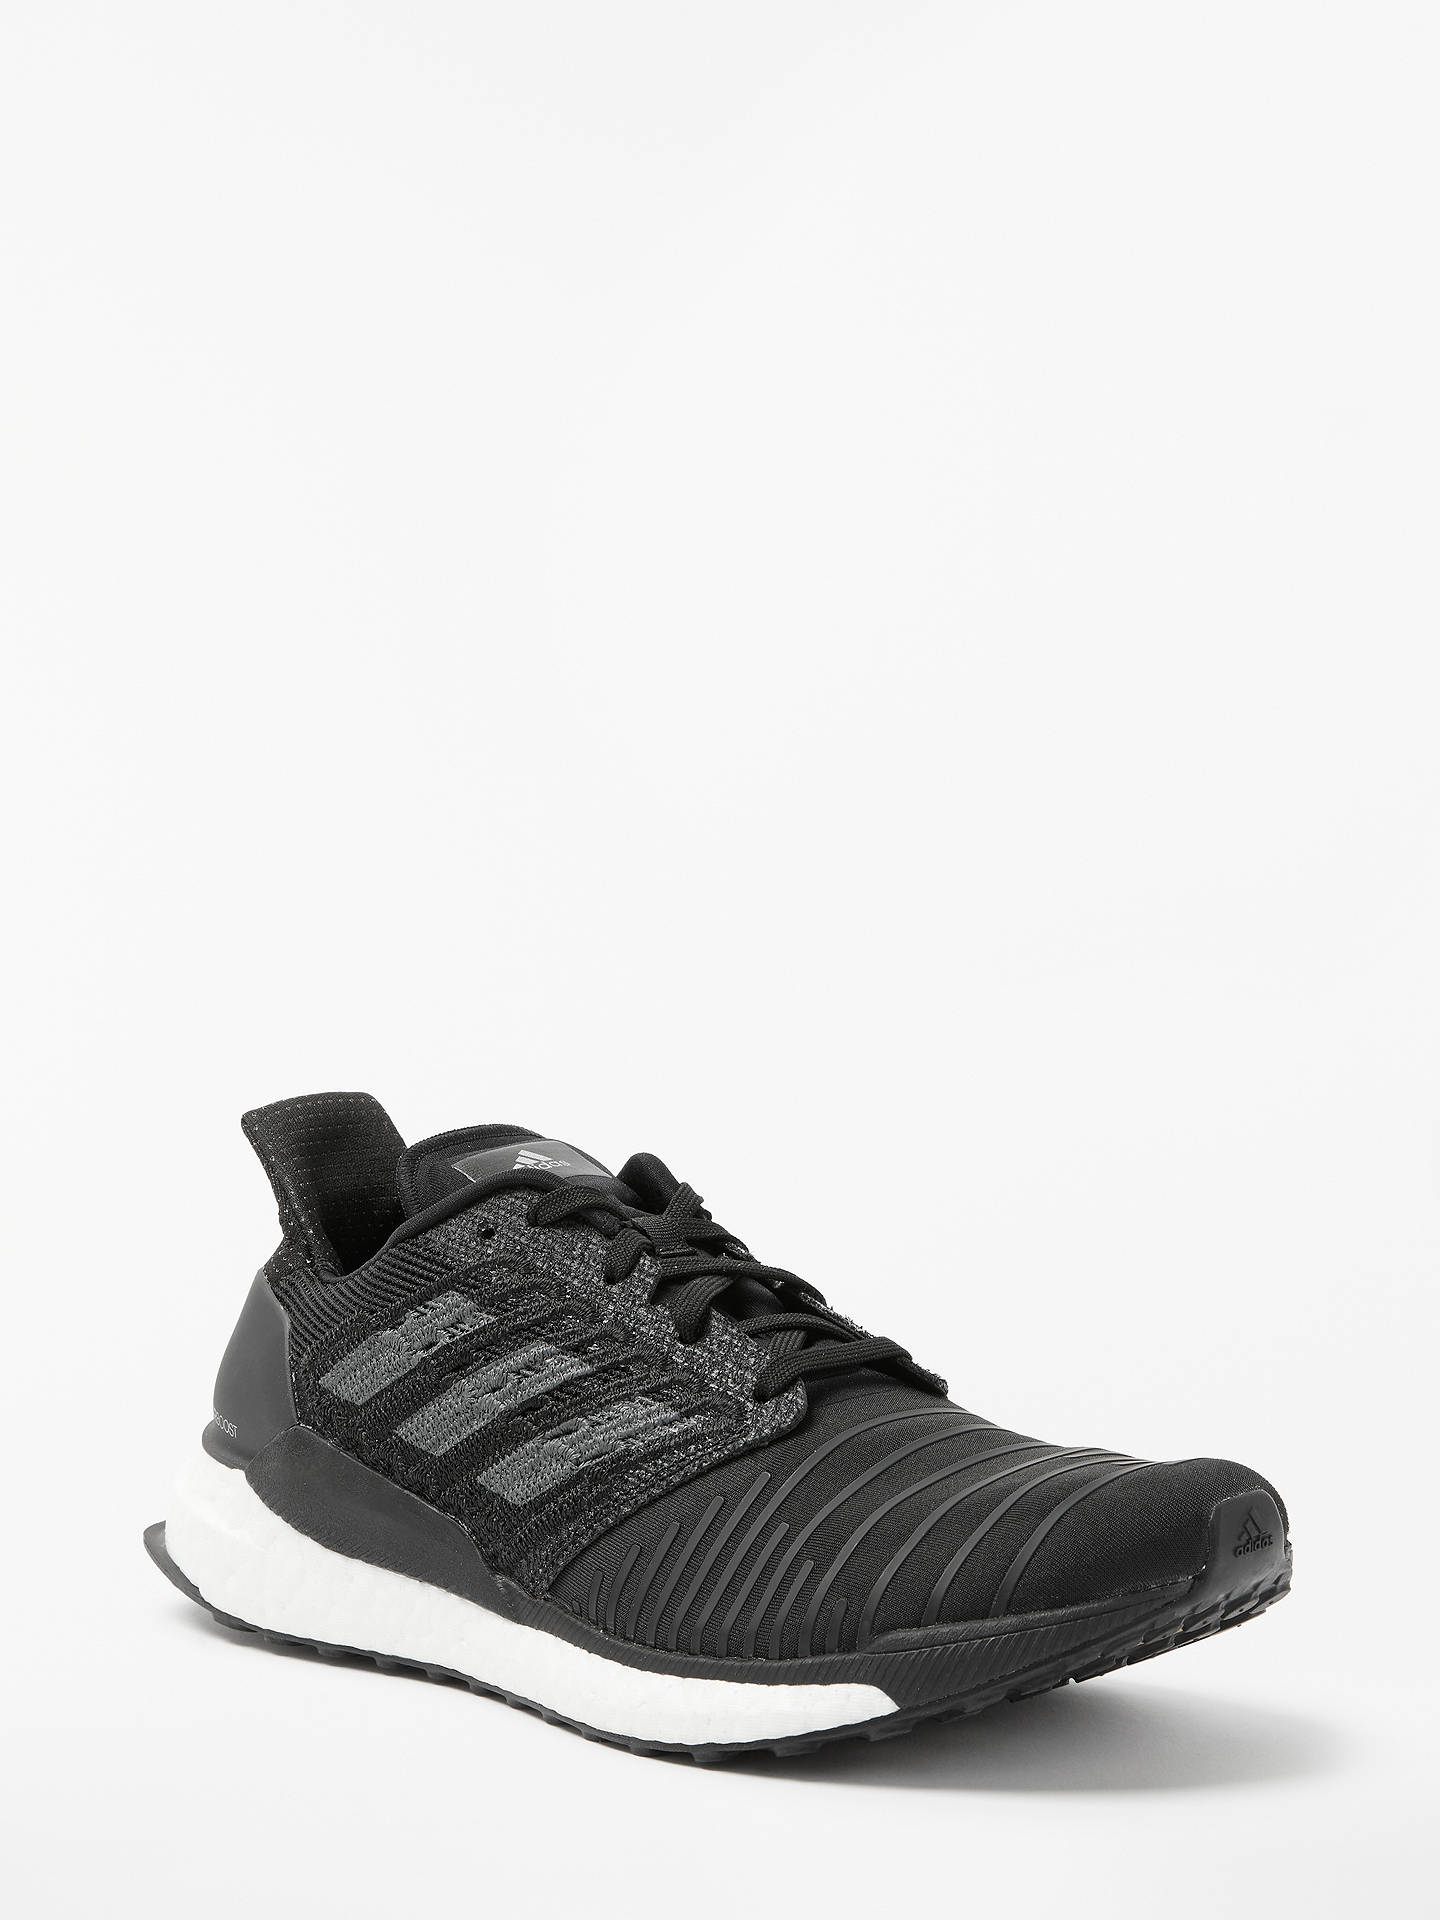 adidas Solar Boost Men's Running Shoes, Core Black at John